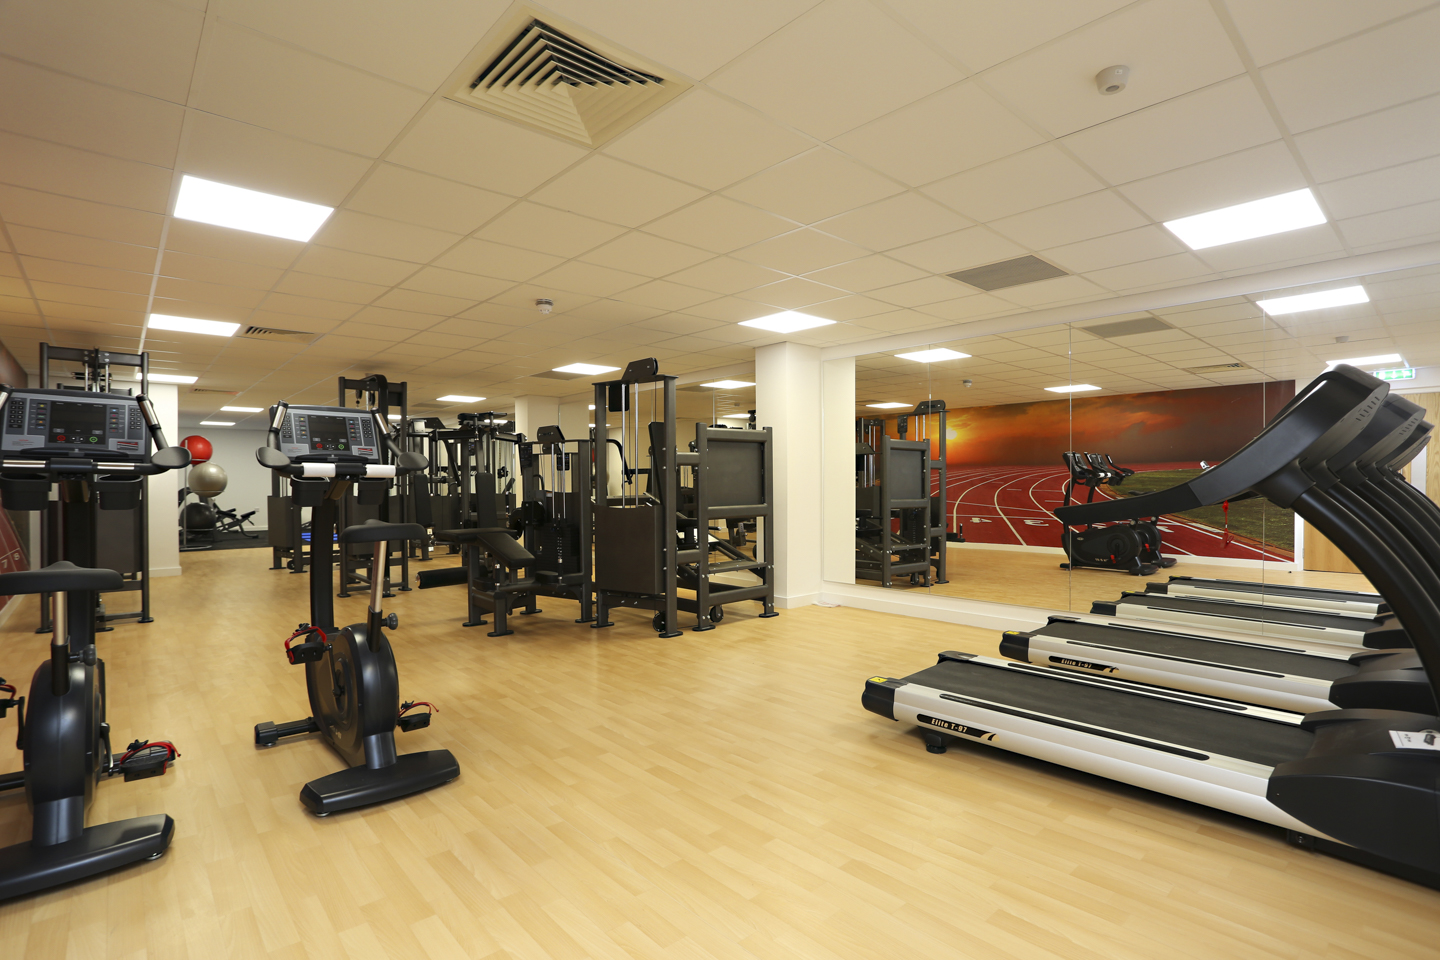 Gym room in Keele house